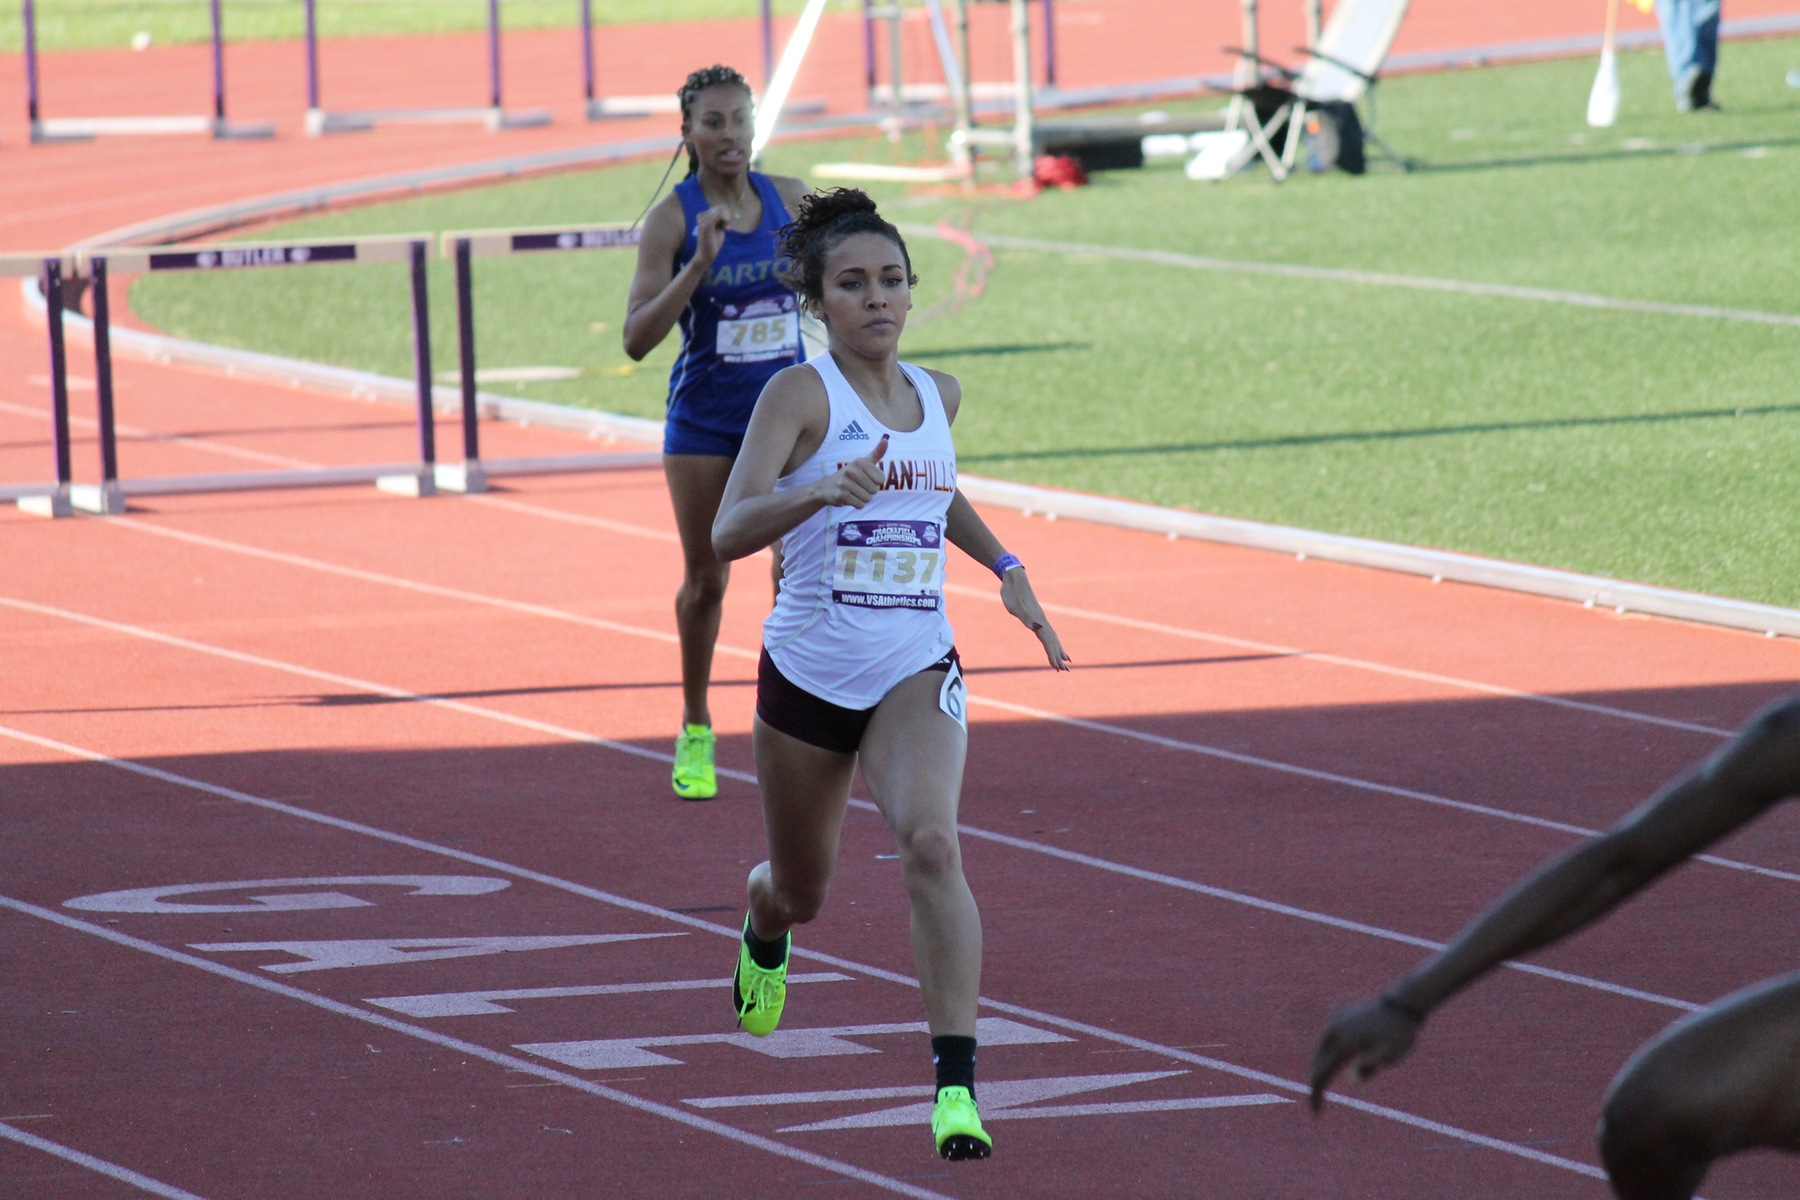 Tyarra English-Paulson finished as the women's track and field team's first ever All-American.